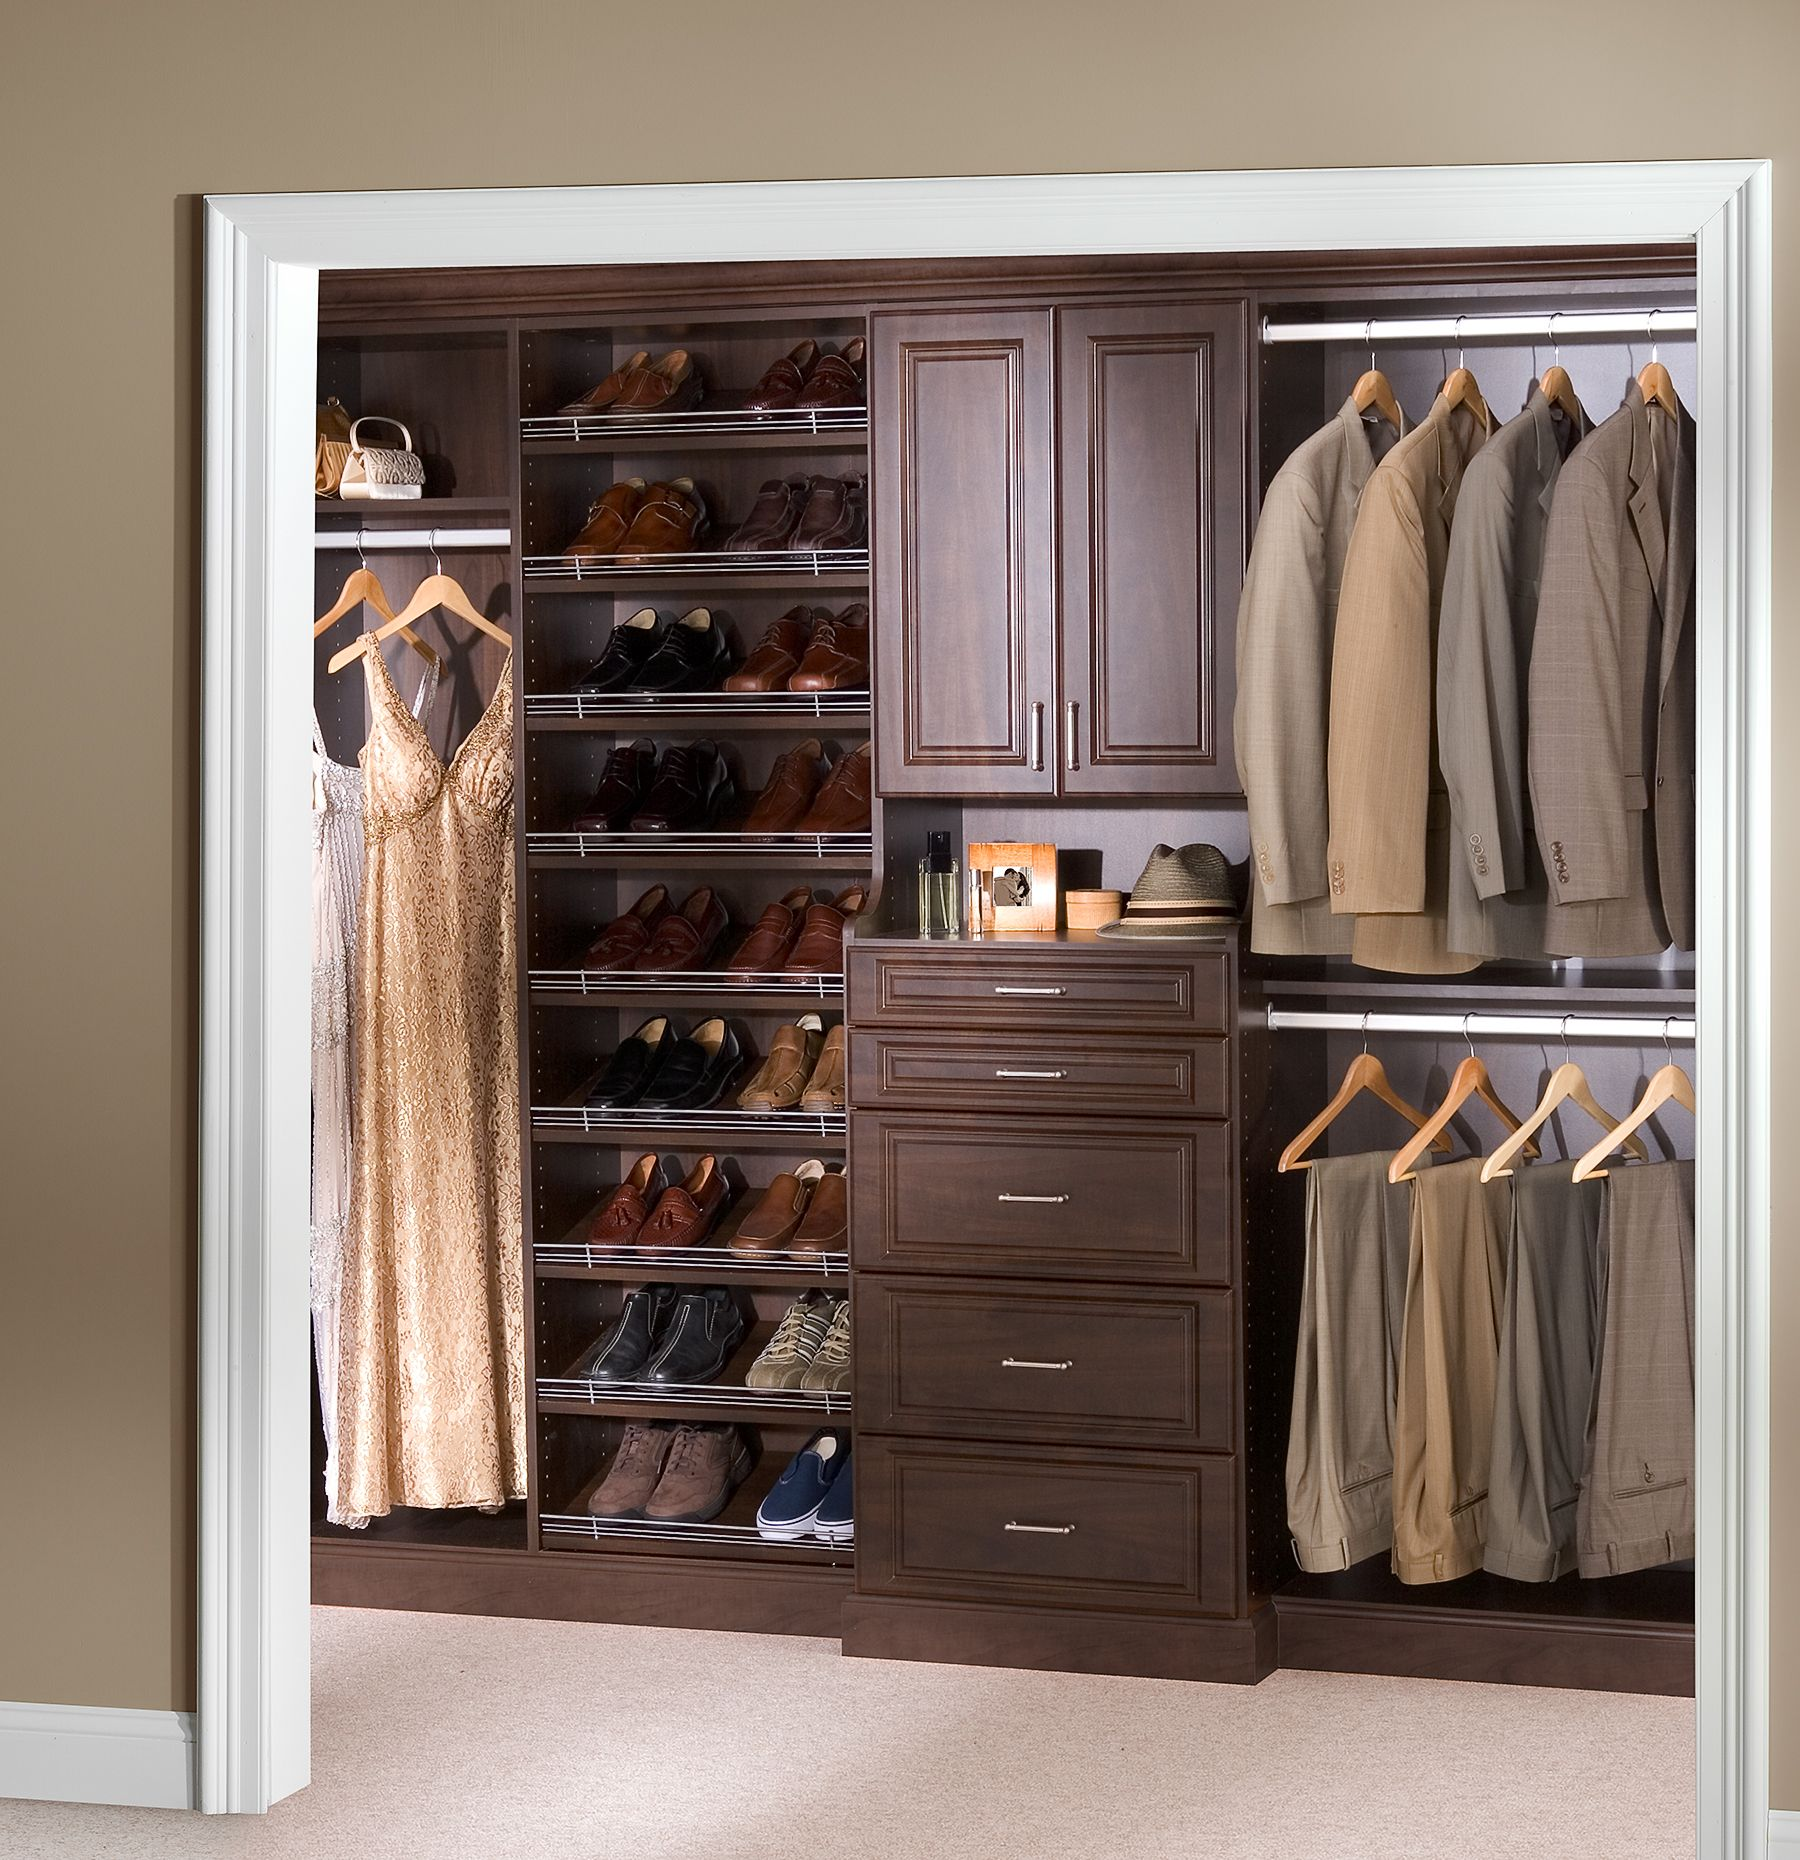 closet organization systems. closet organization systems    O R G A N I Z E   Pinterest